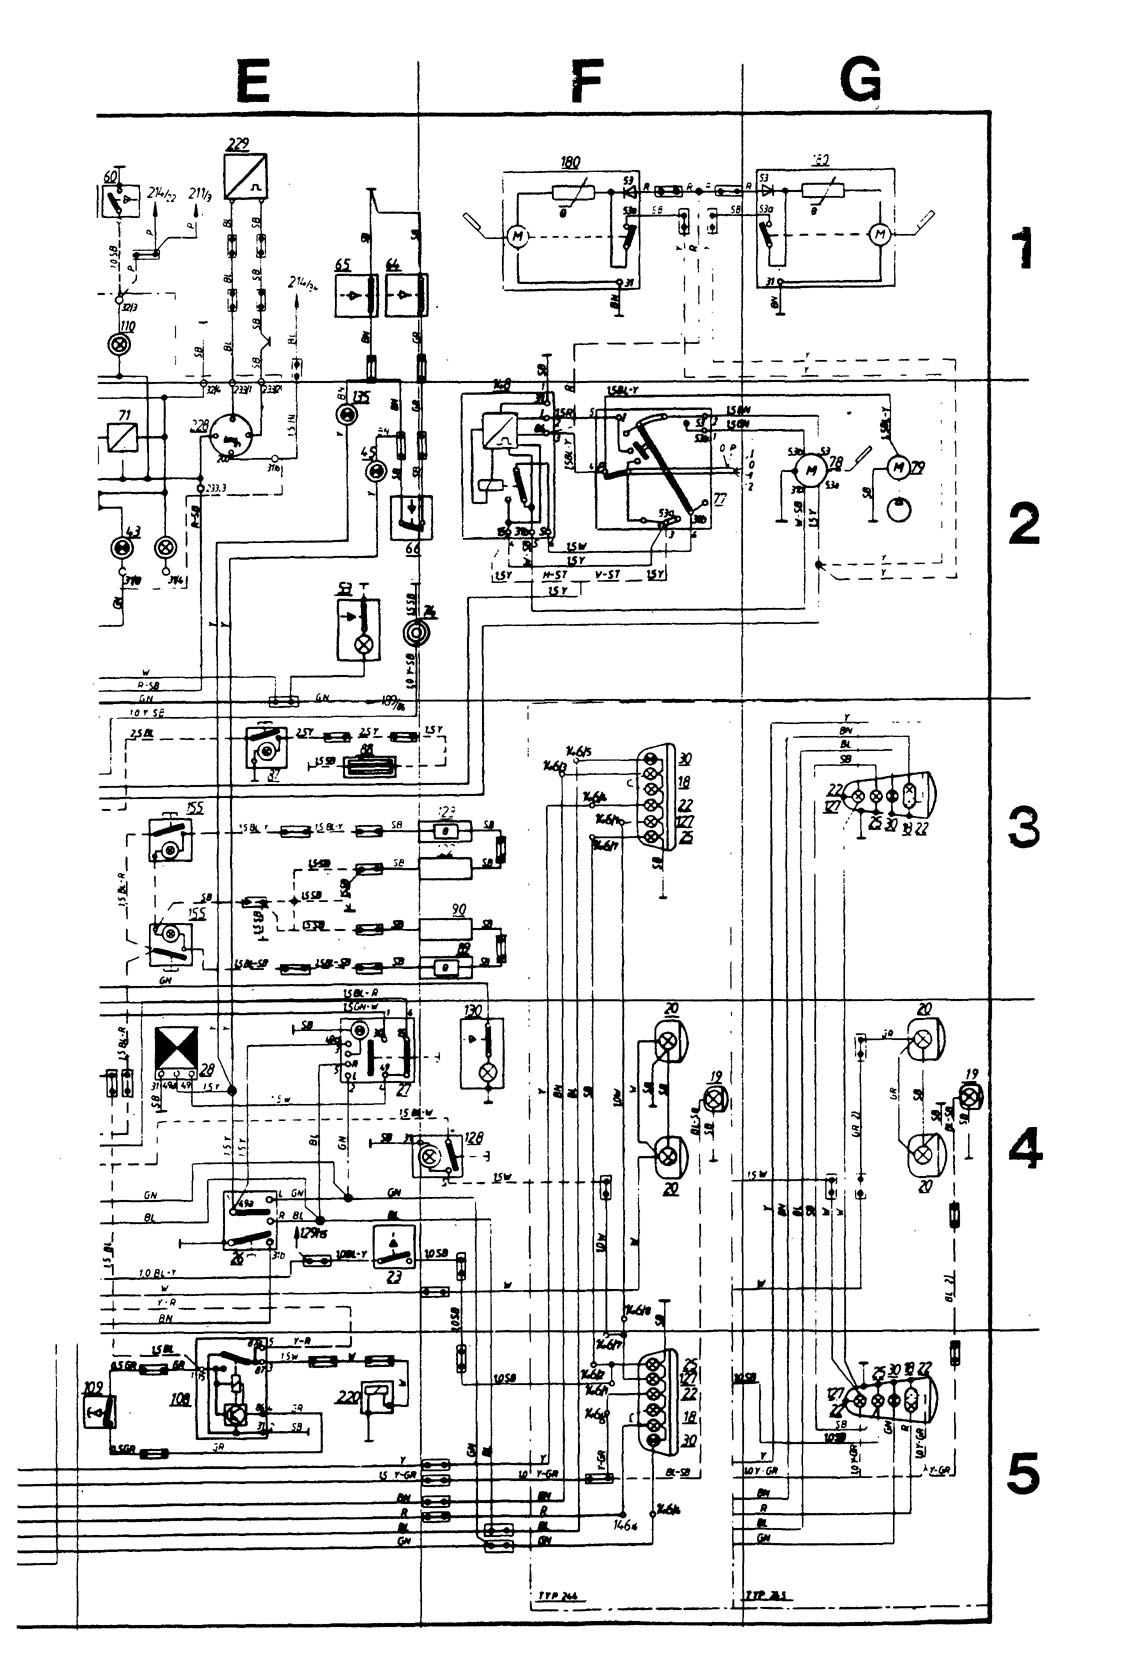 1989 Volvo 240 Alternator Wiring Diagram Detailed Schematic Diagrams 1990 740 Gle Wagon Engine 244 Diy Enthusiasts U2022 Mercury